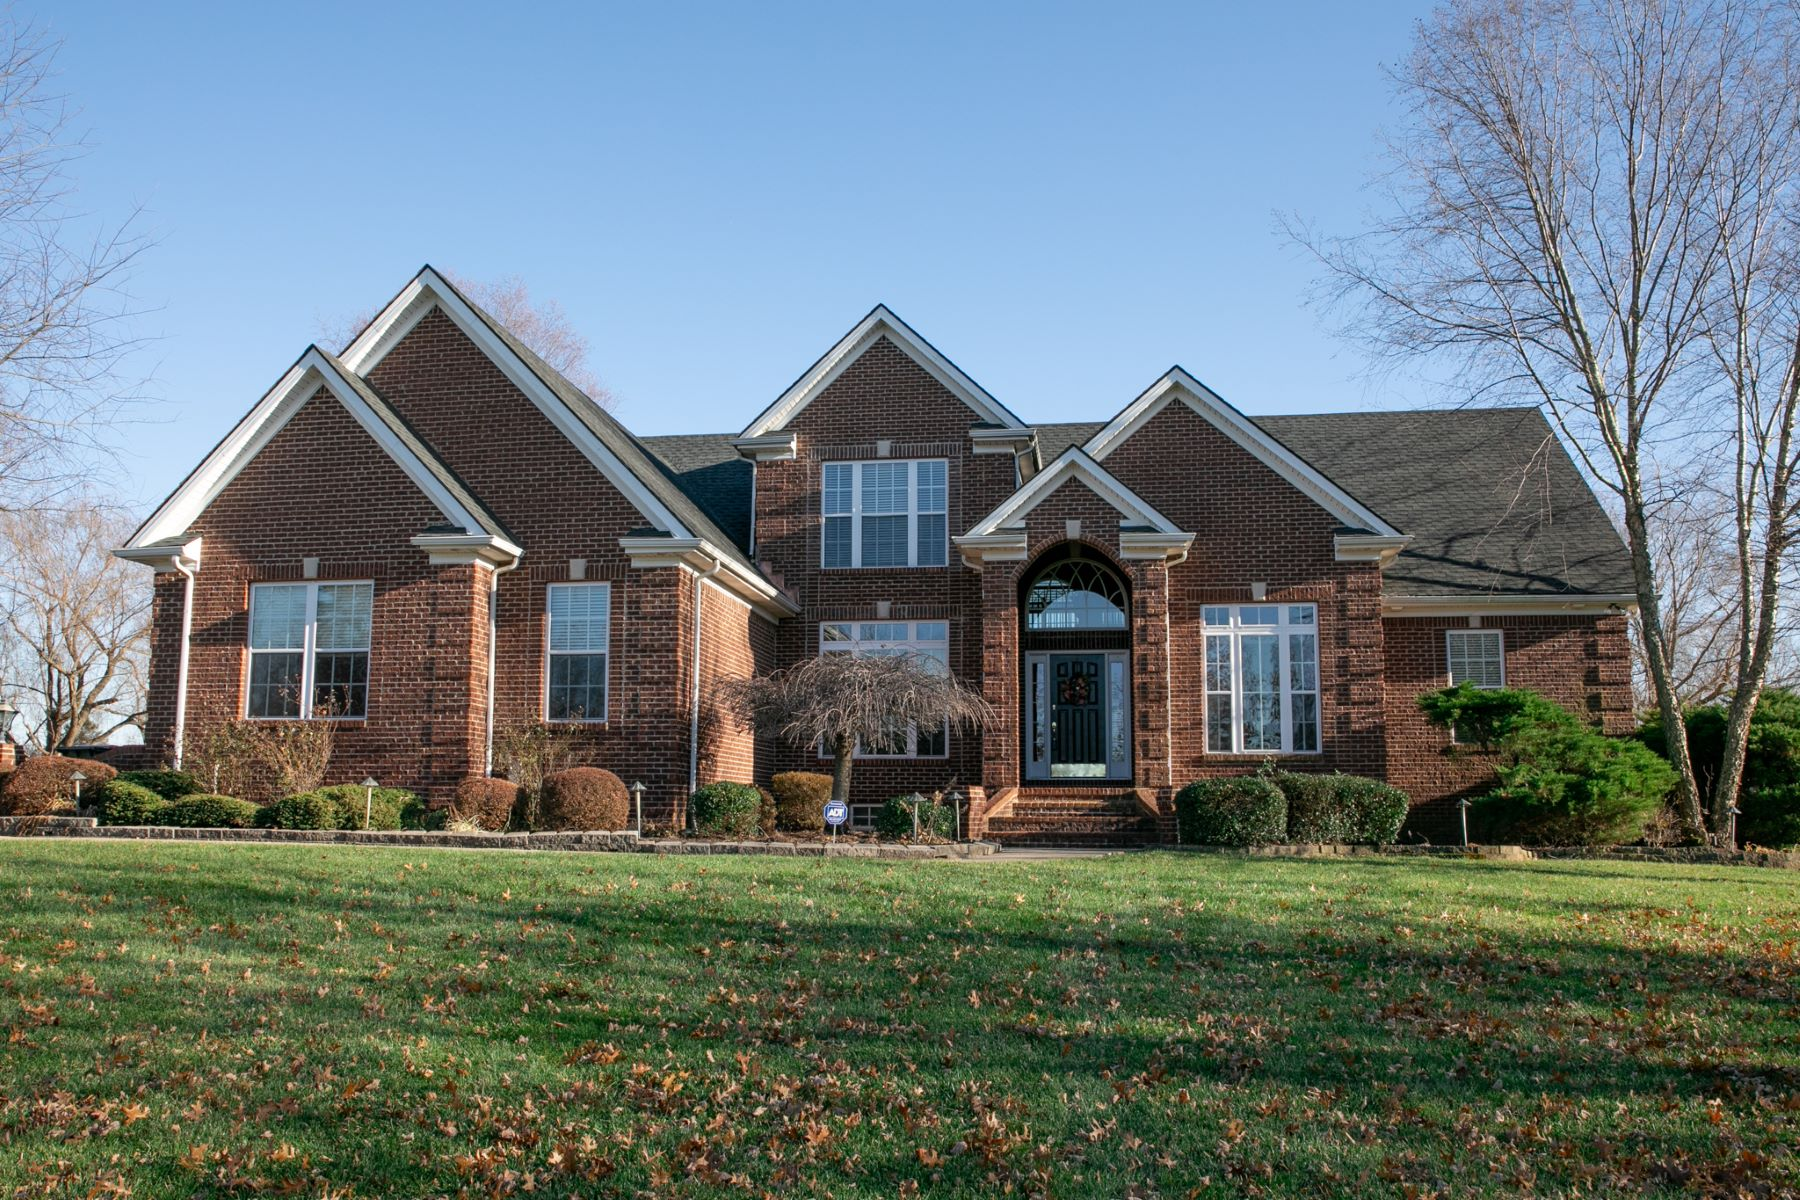 Single Family Homes for Sale at 210 Cambridge Lane Nicholasville, Kentucky 40356 United States